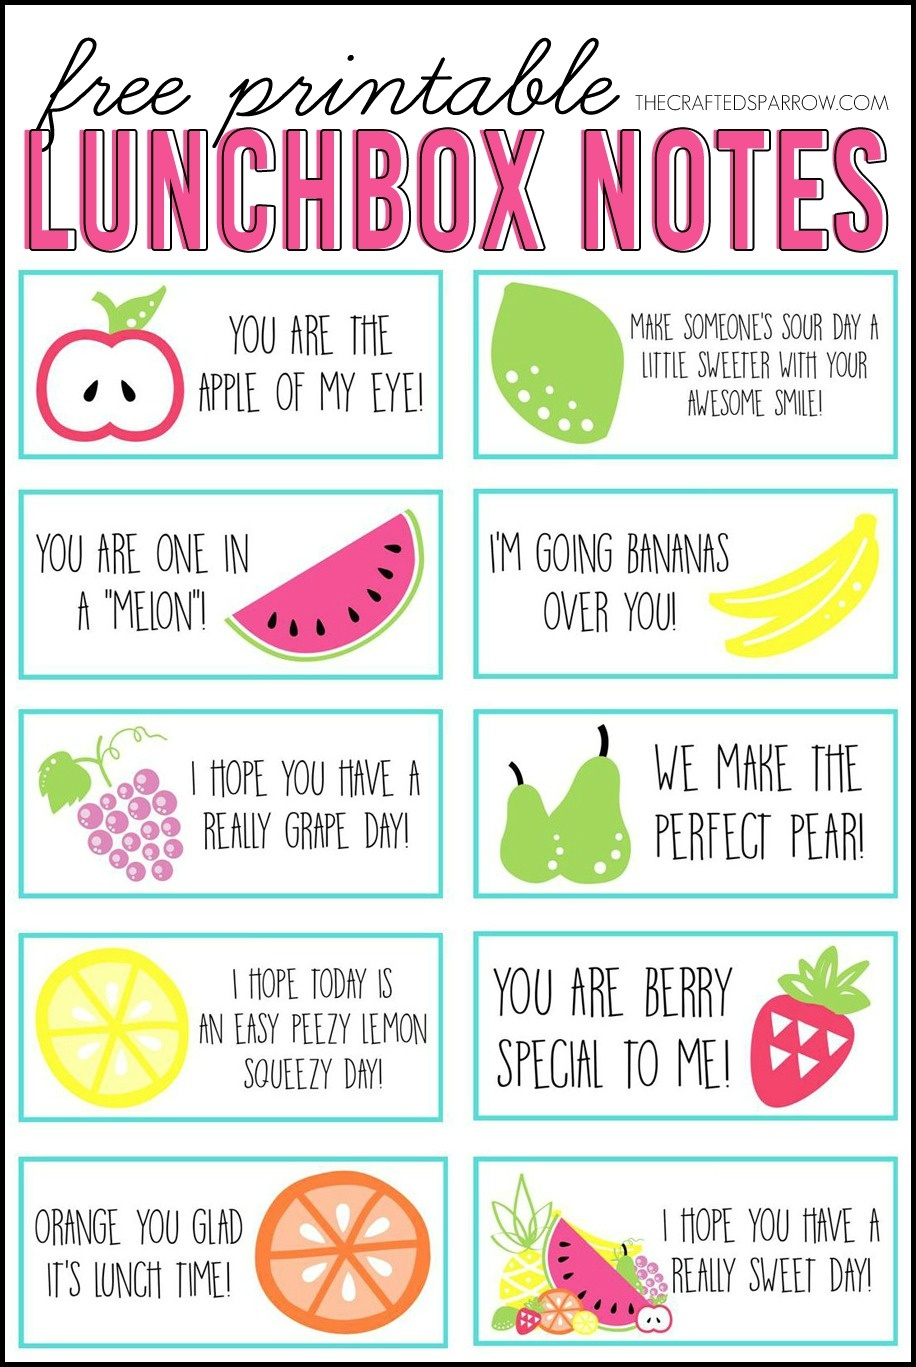 Free Printable Lunchbox Notes - Free Printable Lunchbox Notes